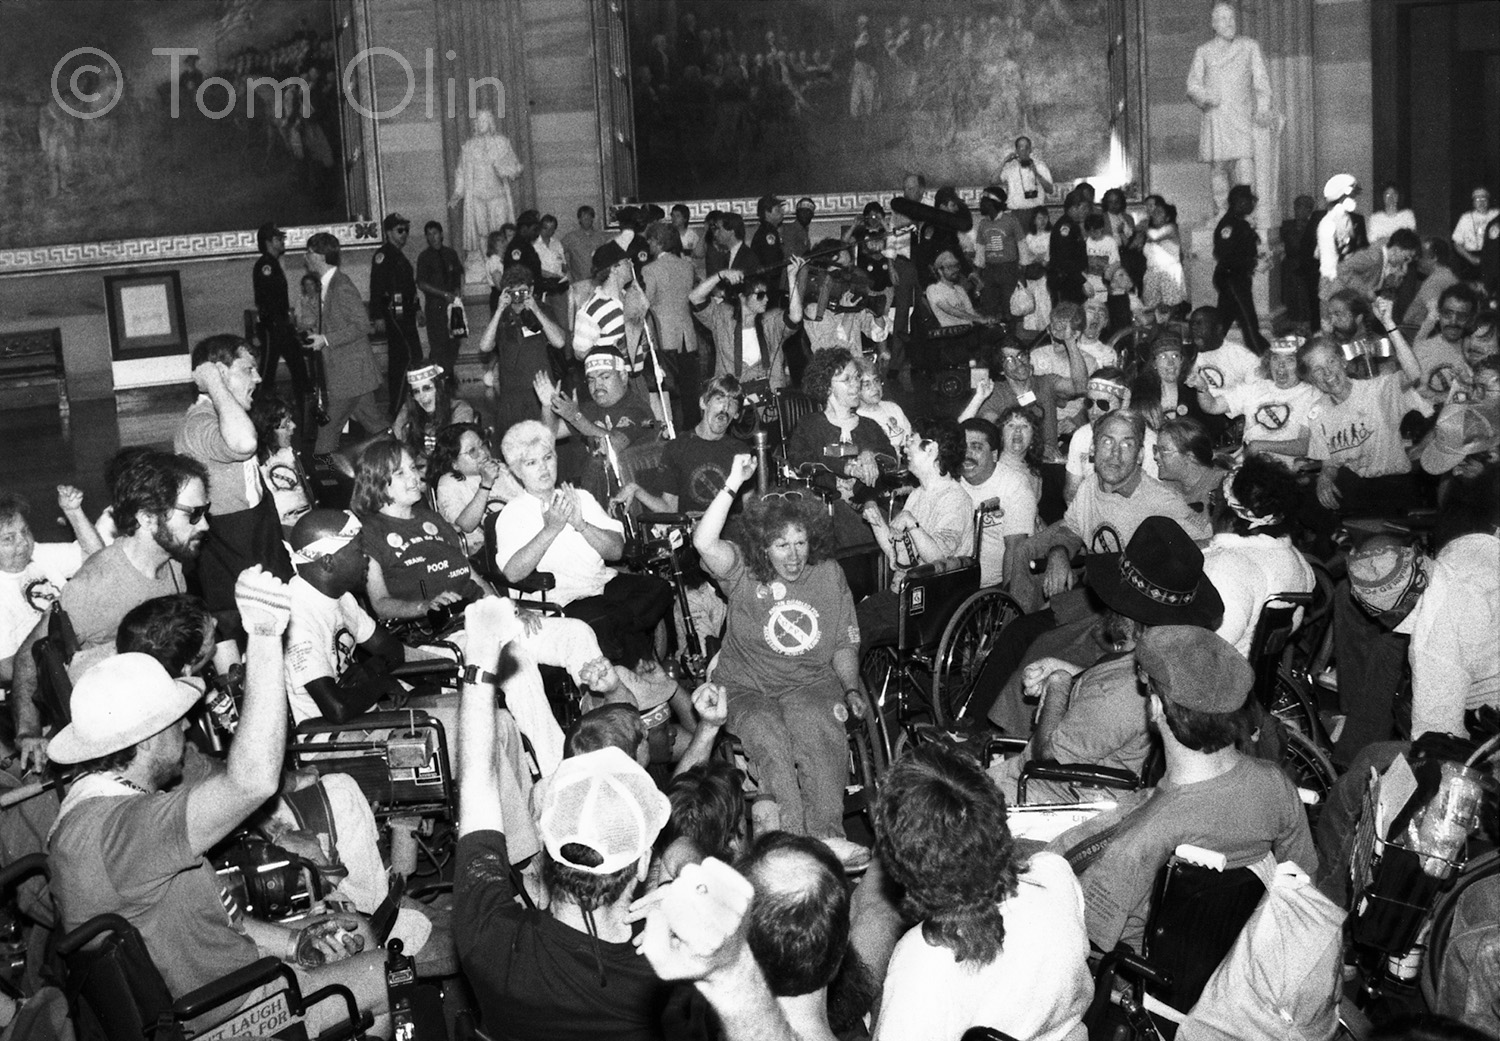 Back and white photo of hunderds of protesters in the Rotunda of the U.S. Capitol